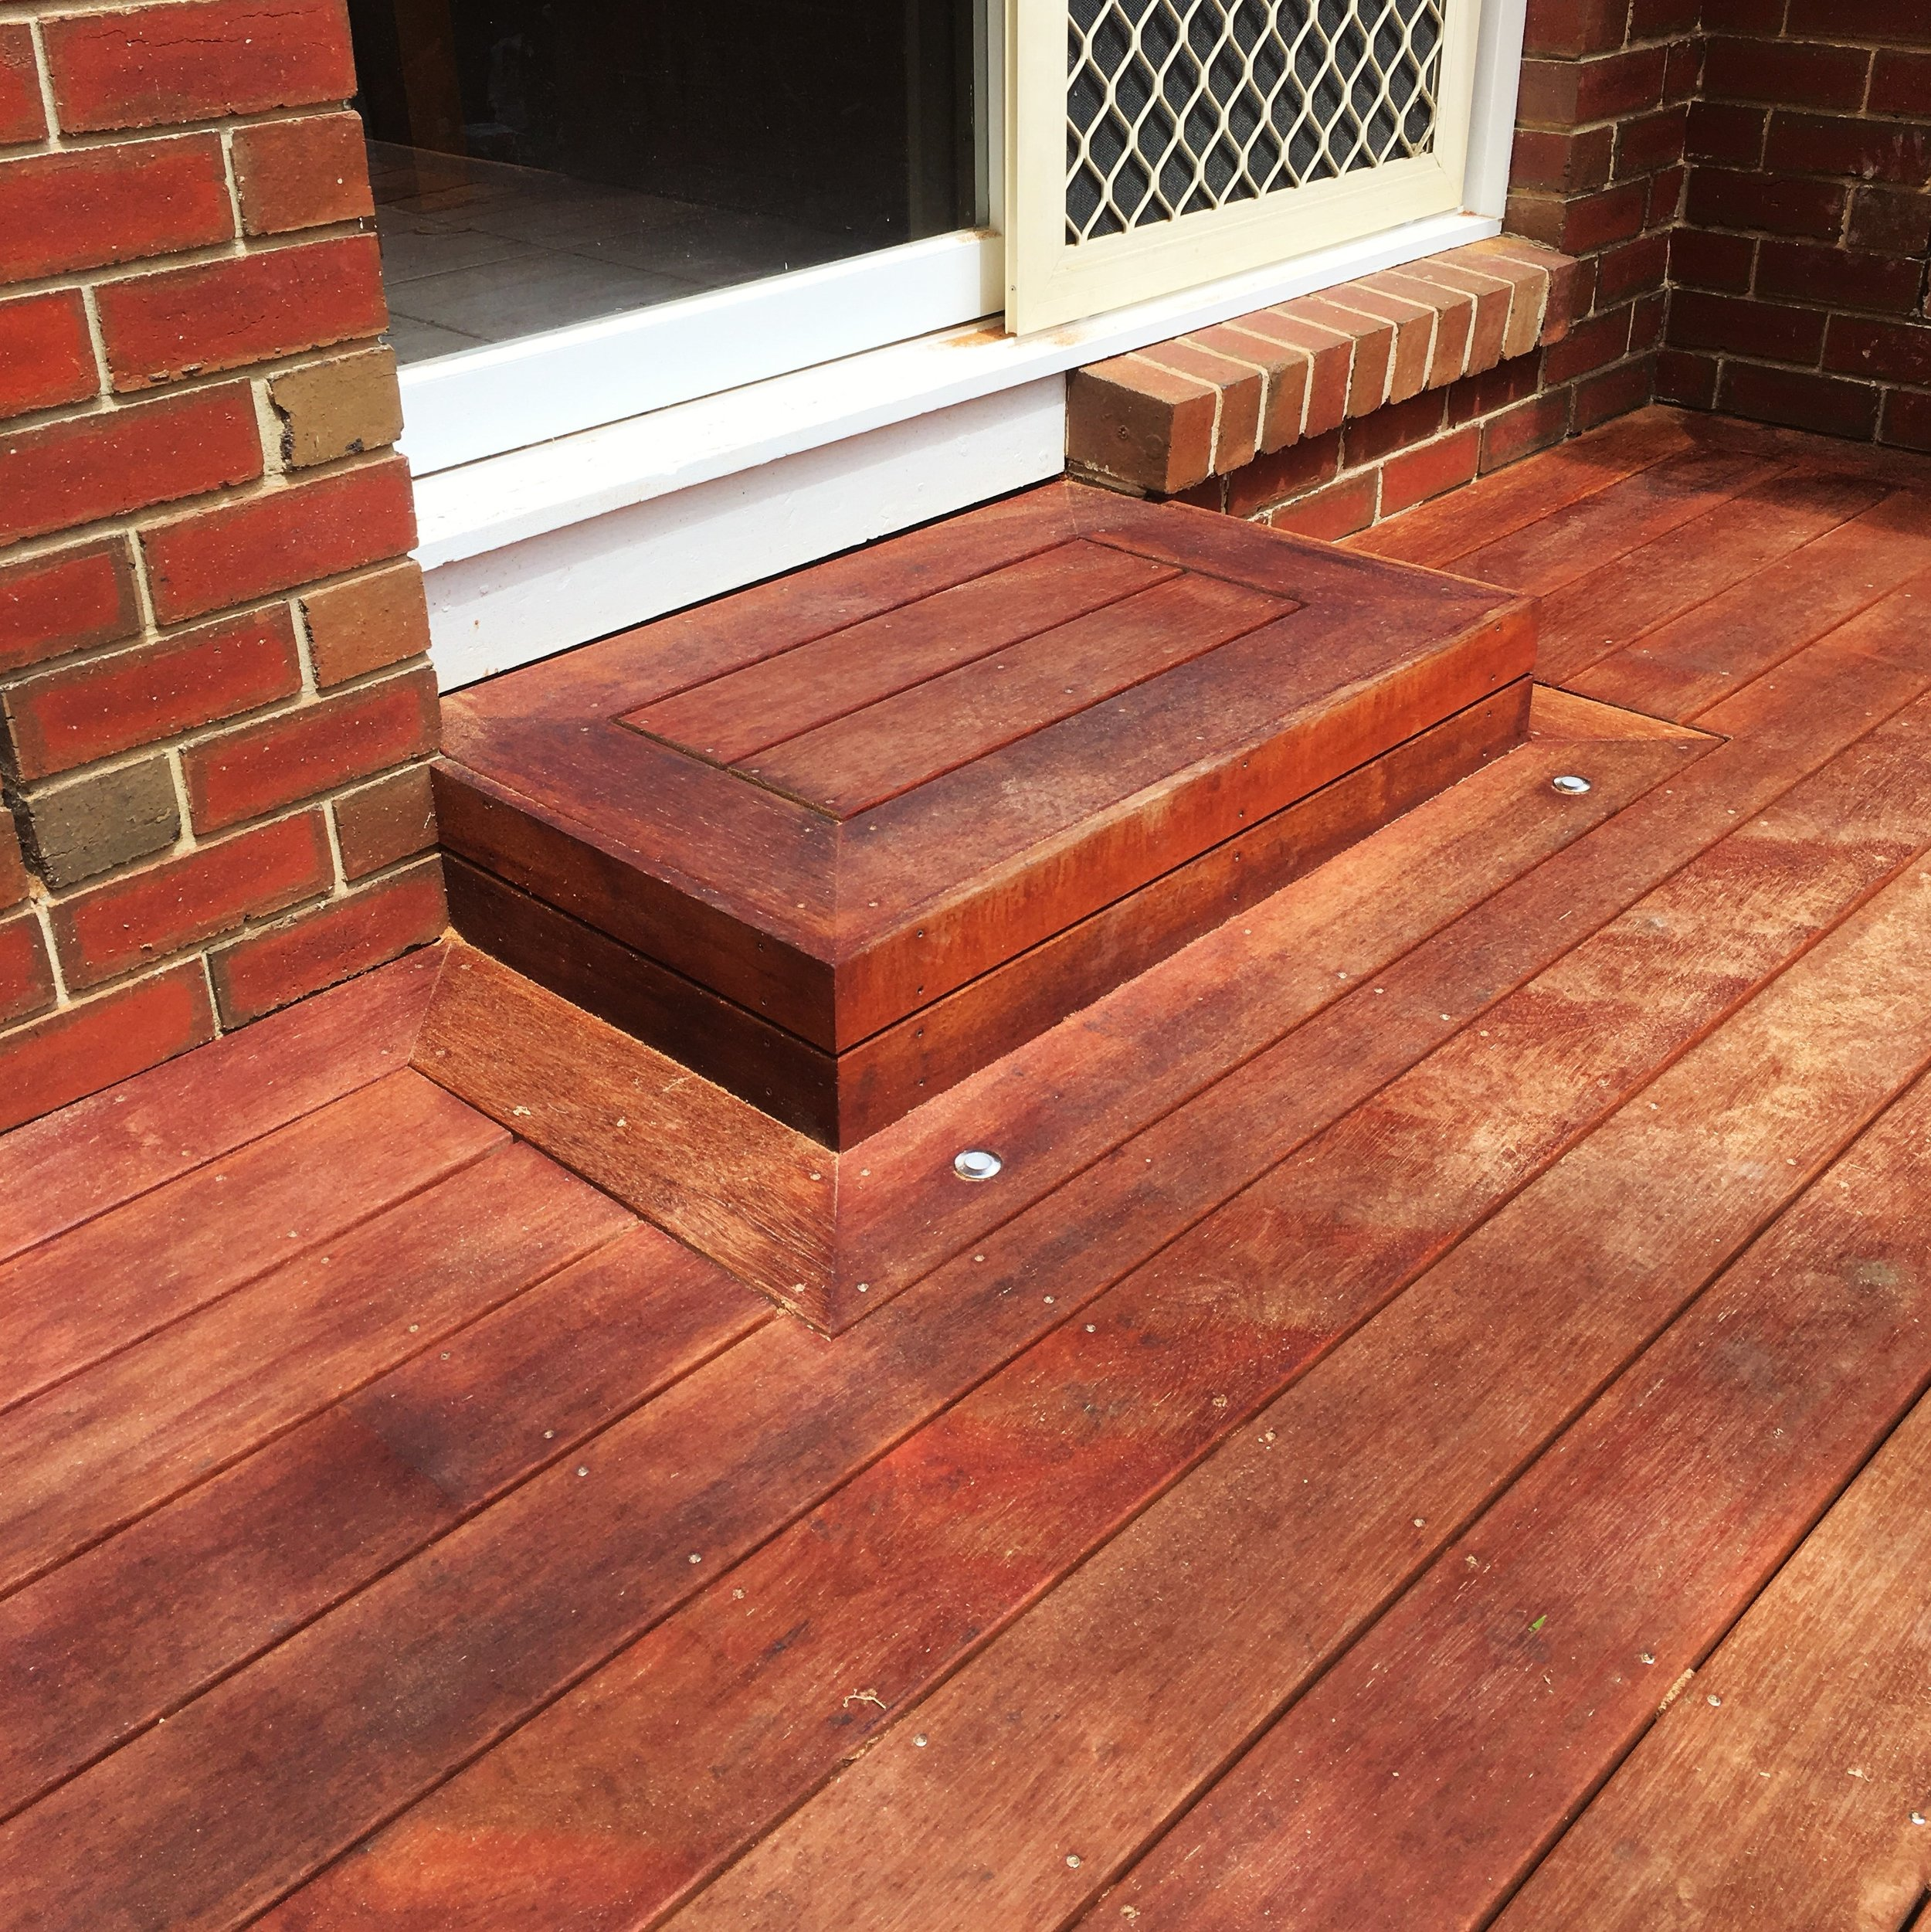 Precision cut decking boards